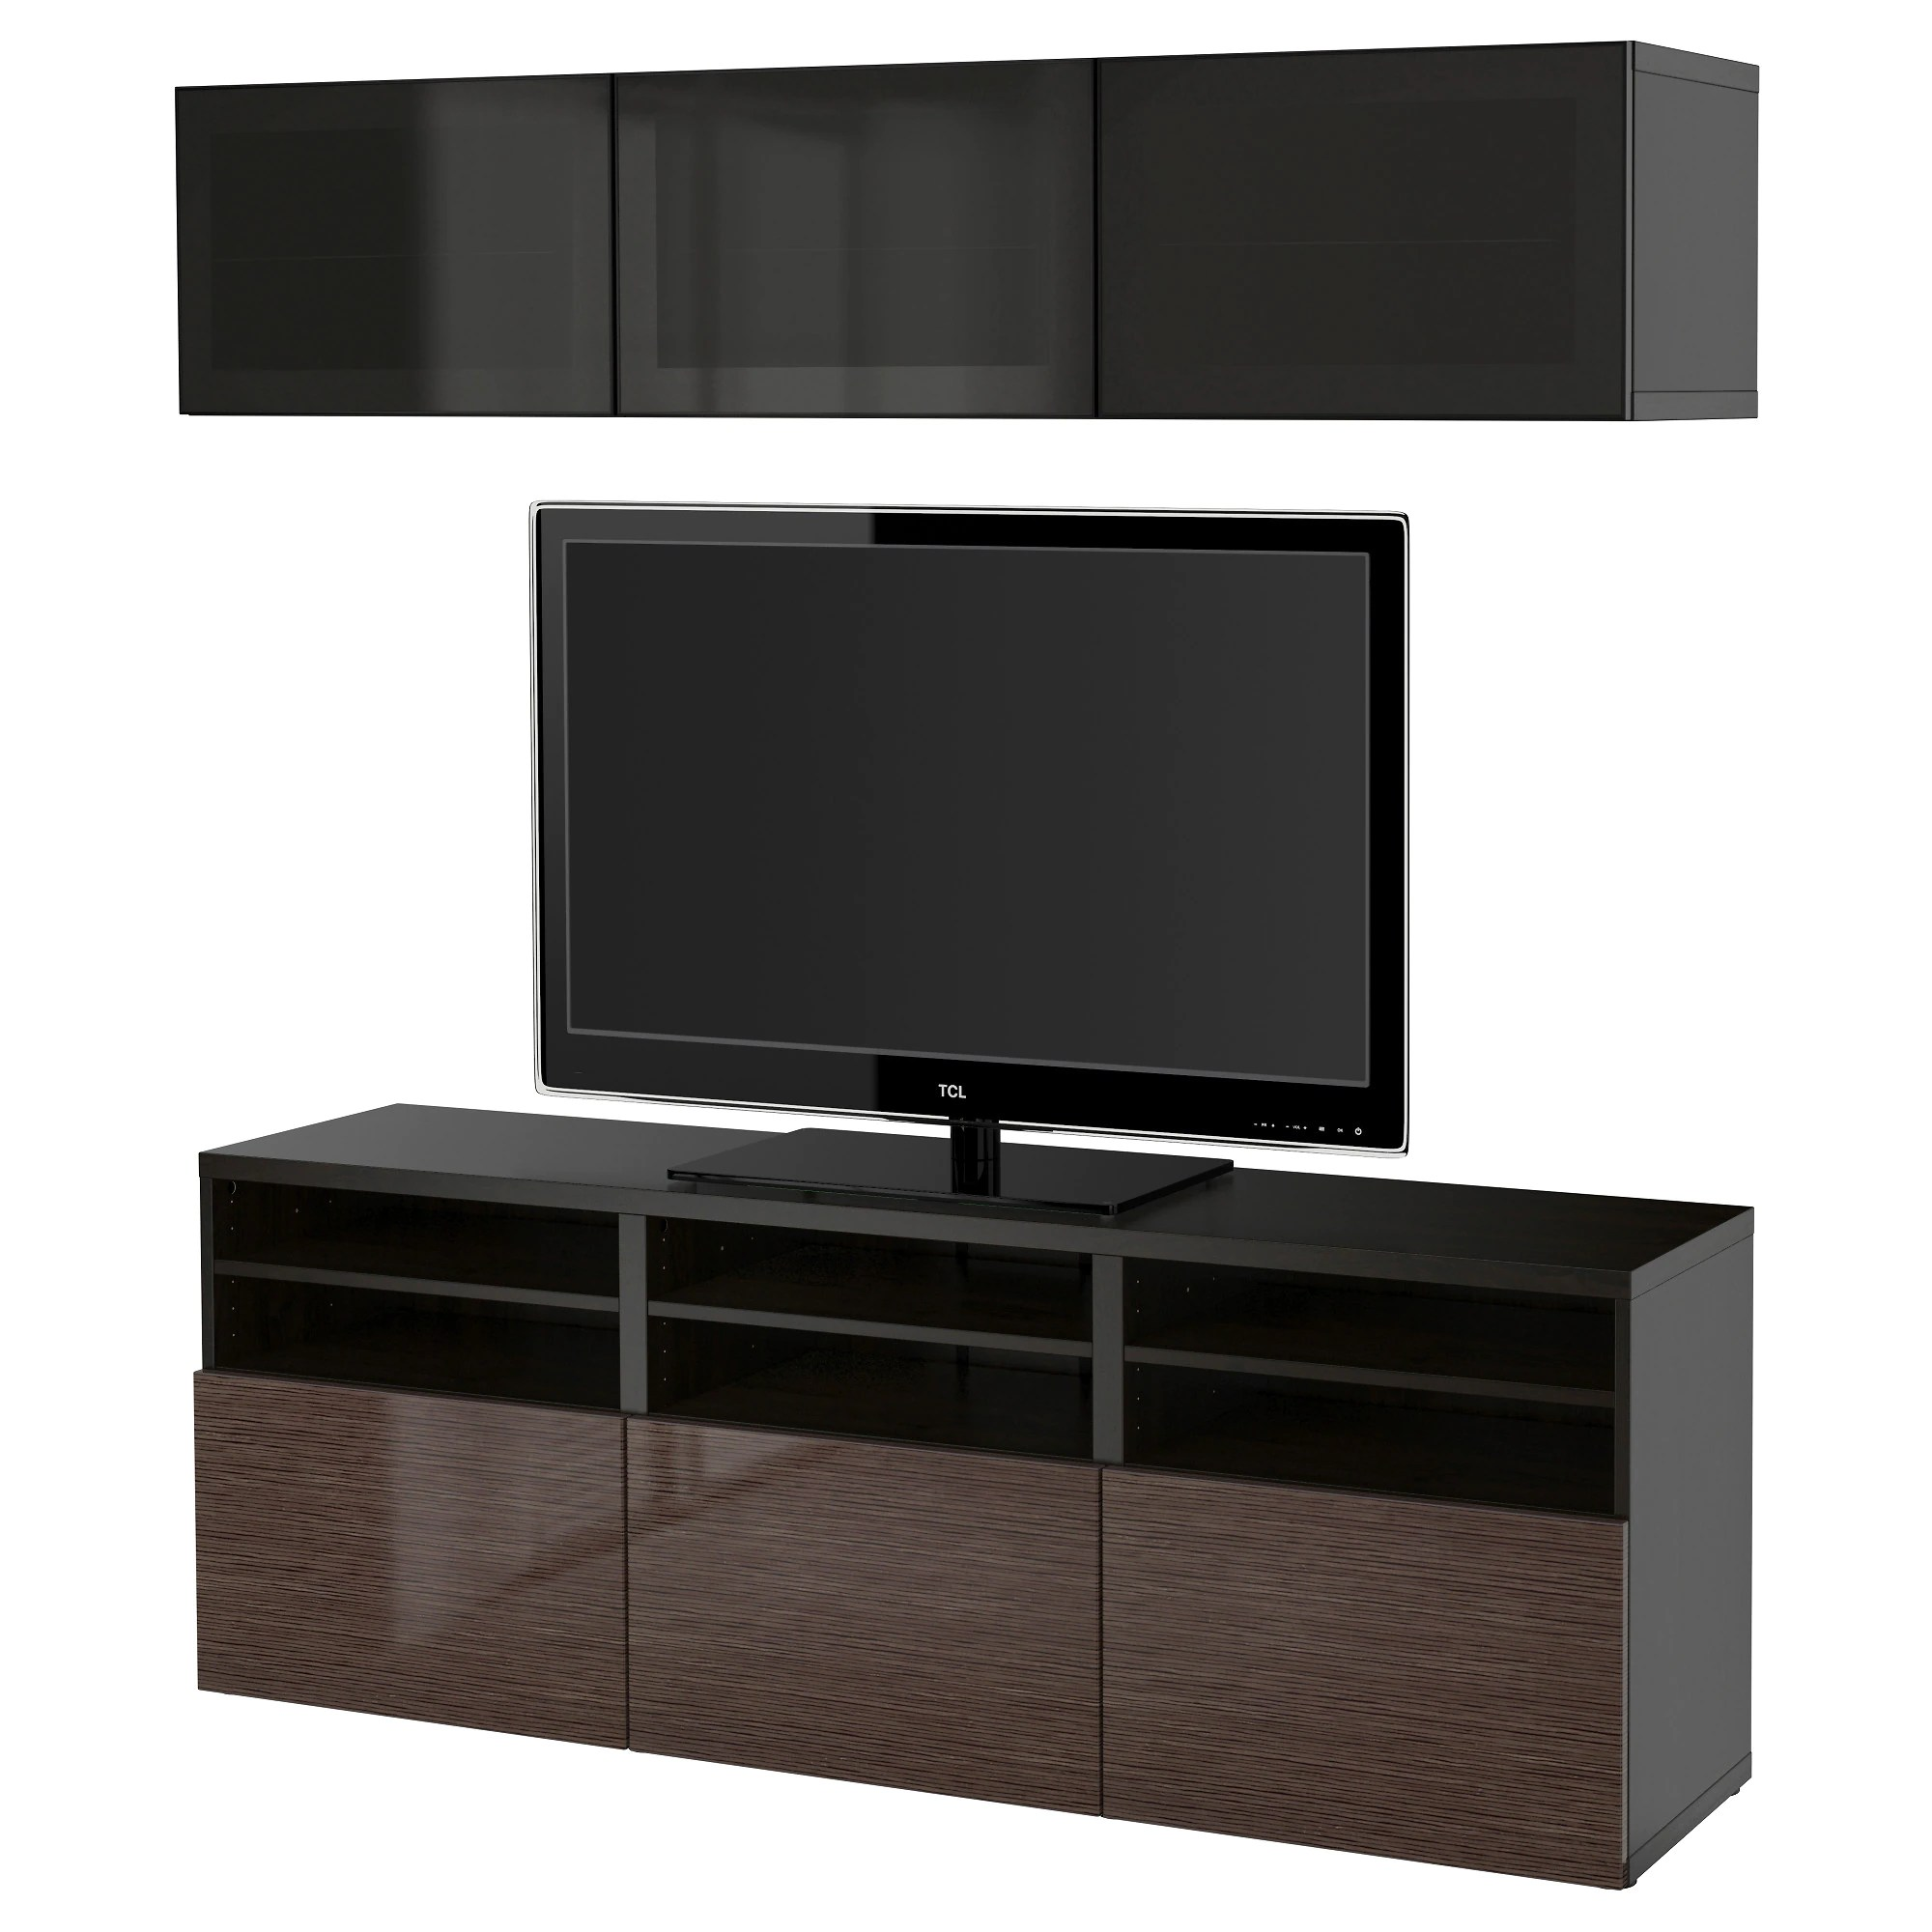 Image gallery ikea media cabinet